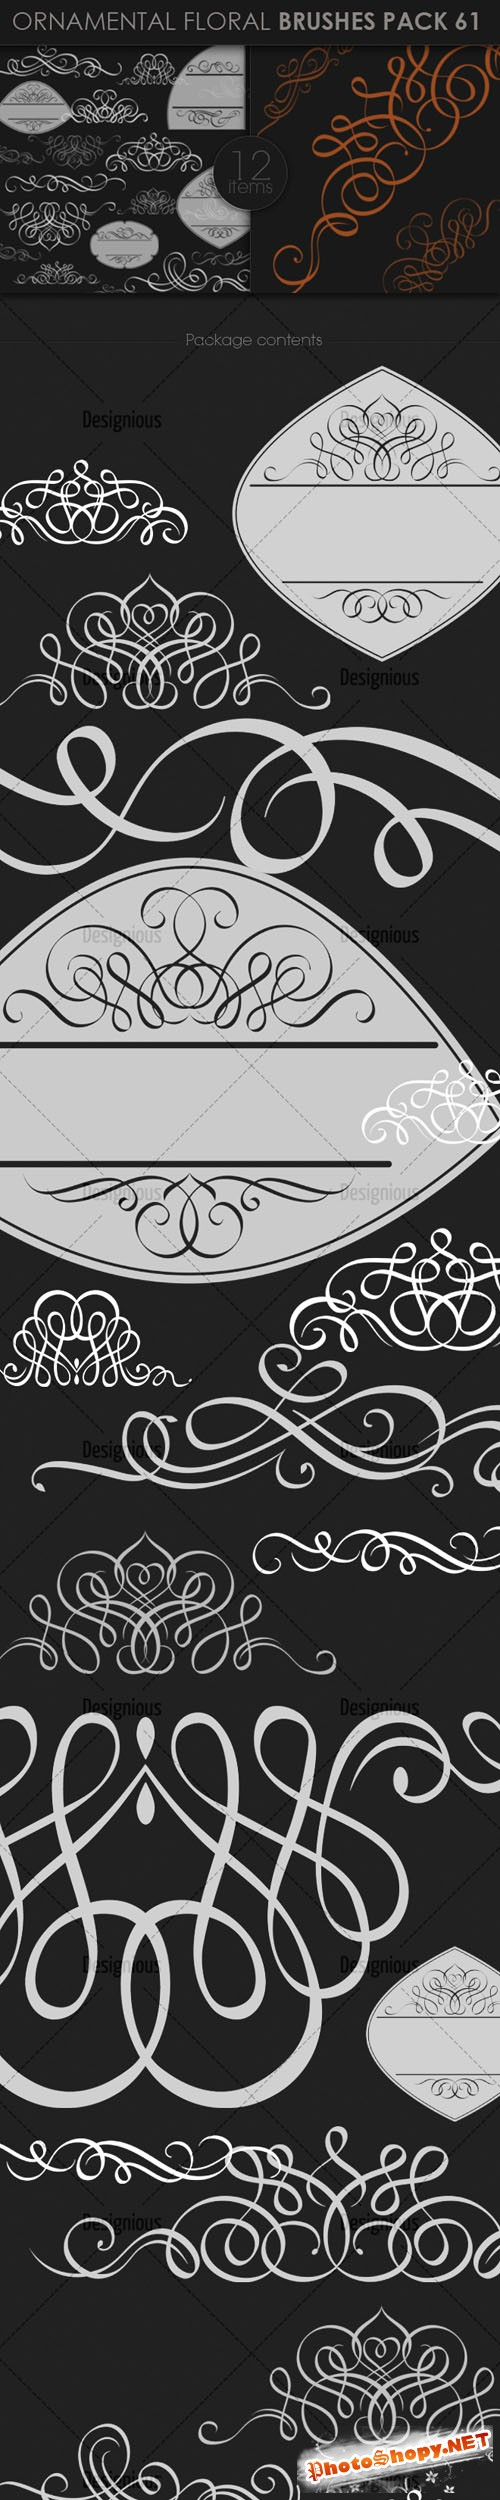 Ornamental Floral Photoshop Brushes Pack 61